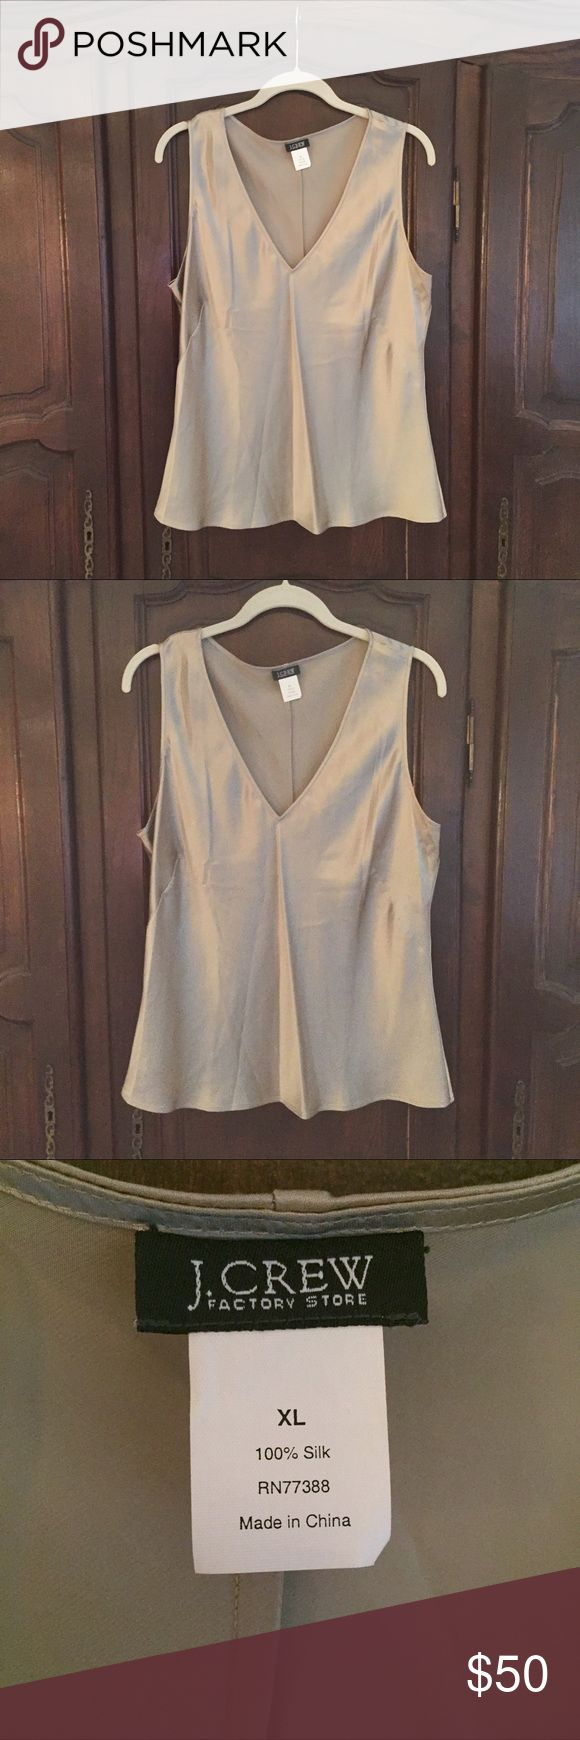 """J Crew v neck sleeveless silk top XL J Crew v neck sleeveless silk top XL. Bust 23"""" length 25"""". Beautifully tailored, bias cut for flattering fit. Purchased from outlet, tags removed but never worn. J. Crew Tops Camisoles"""